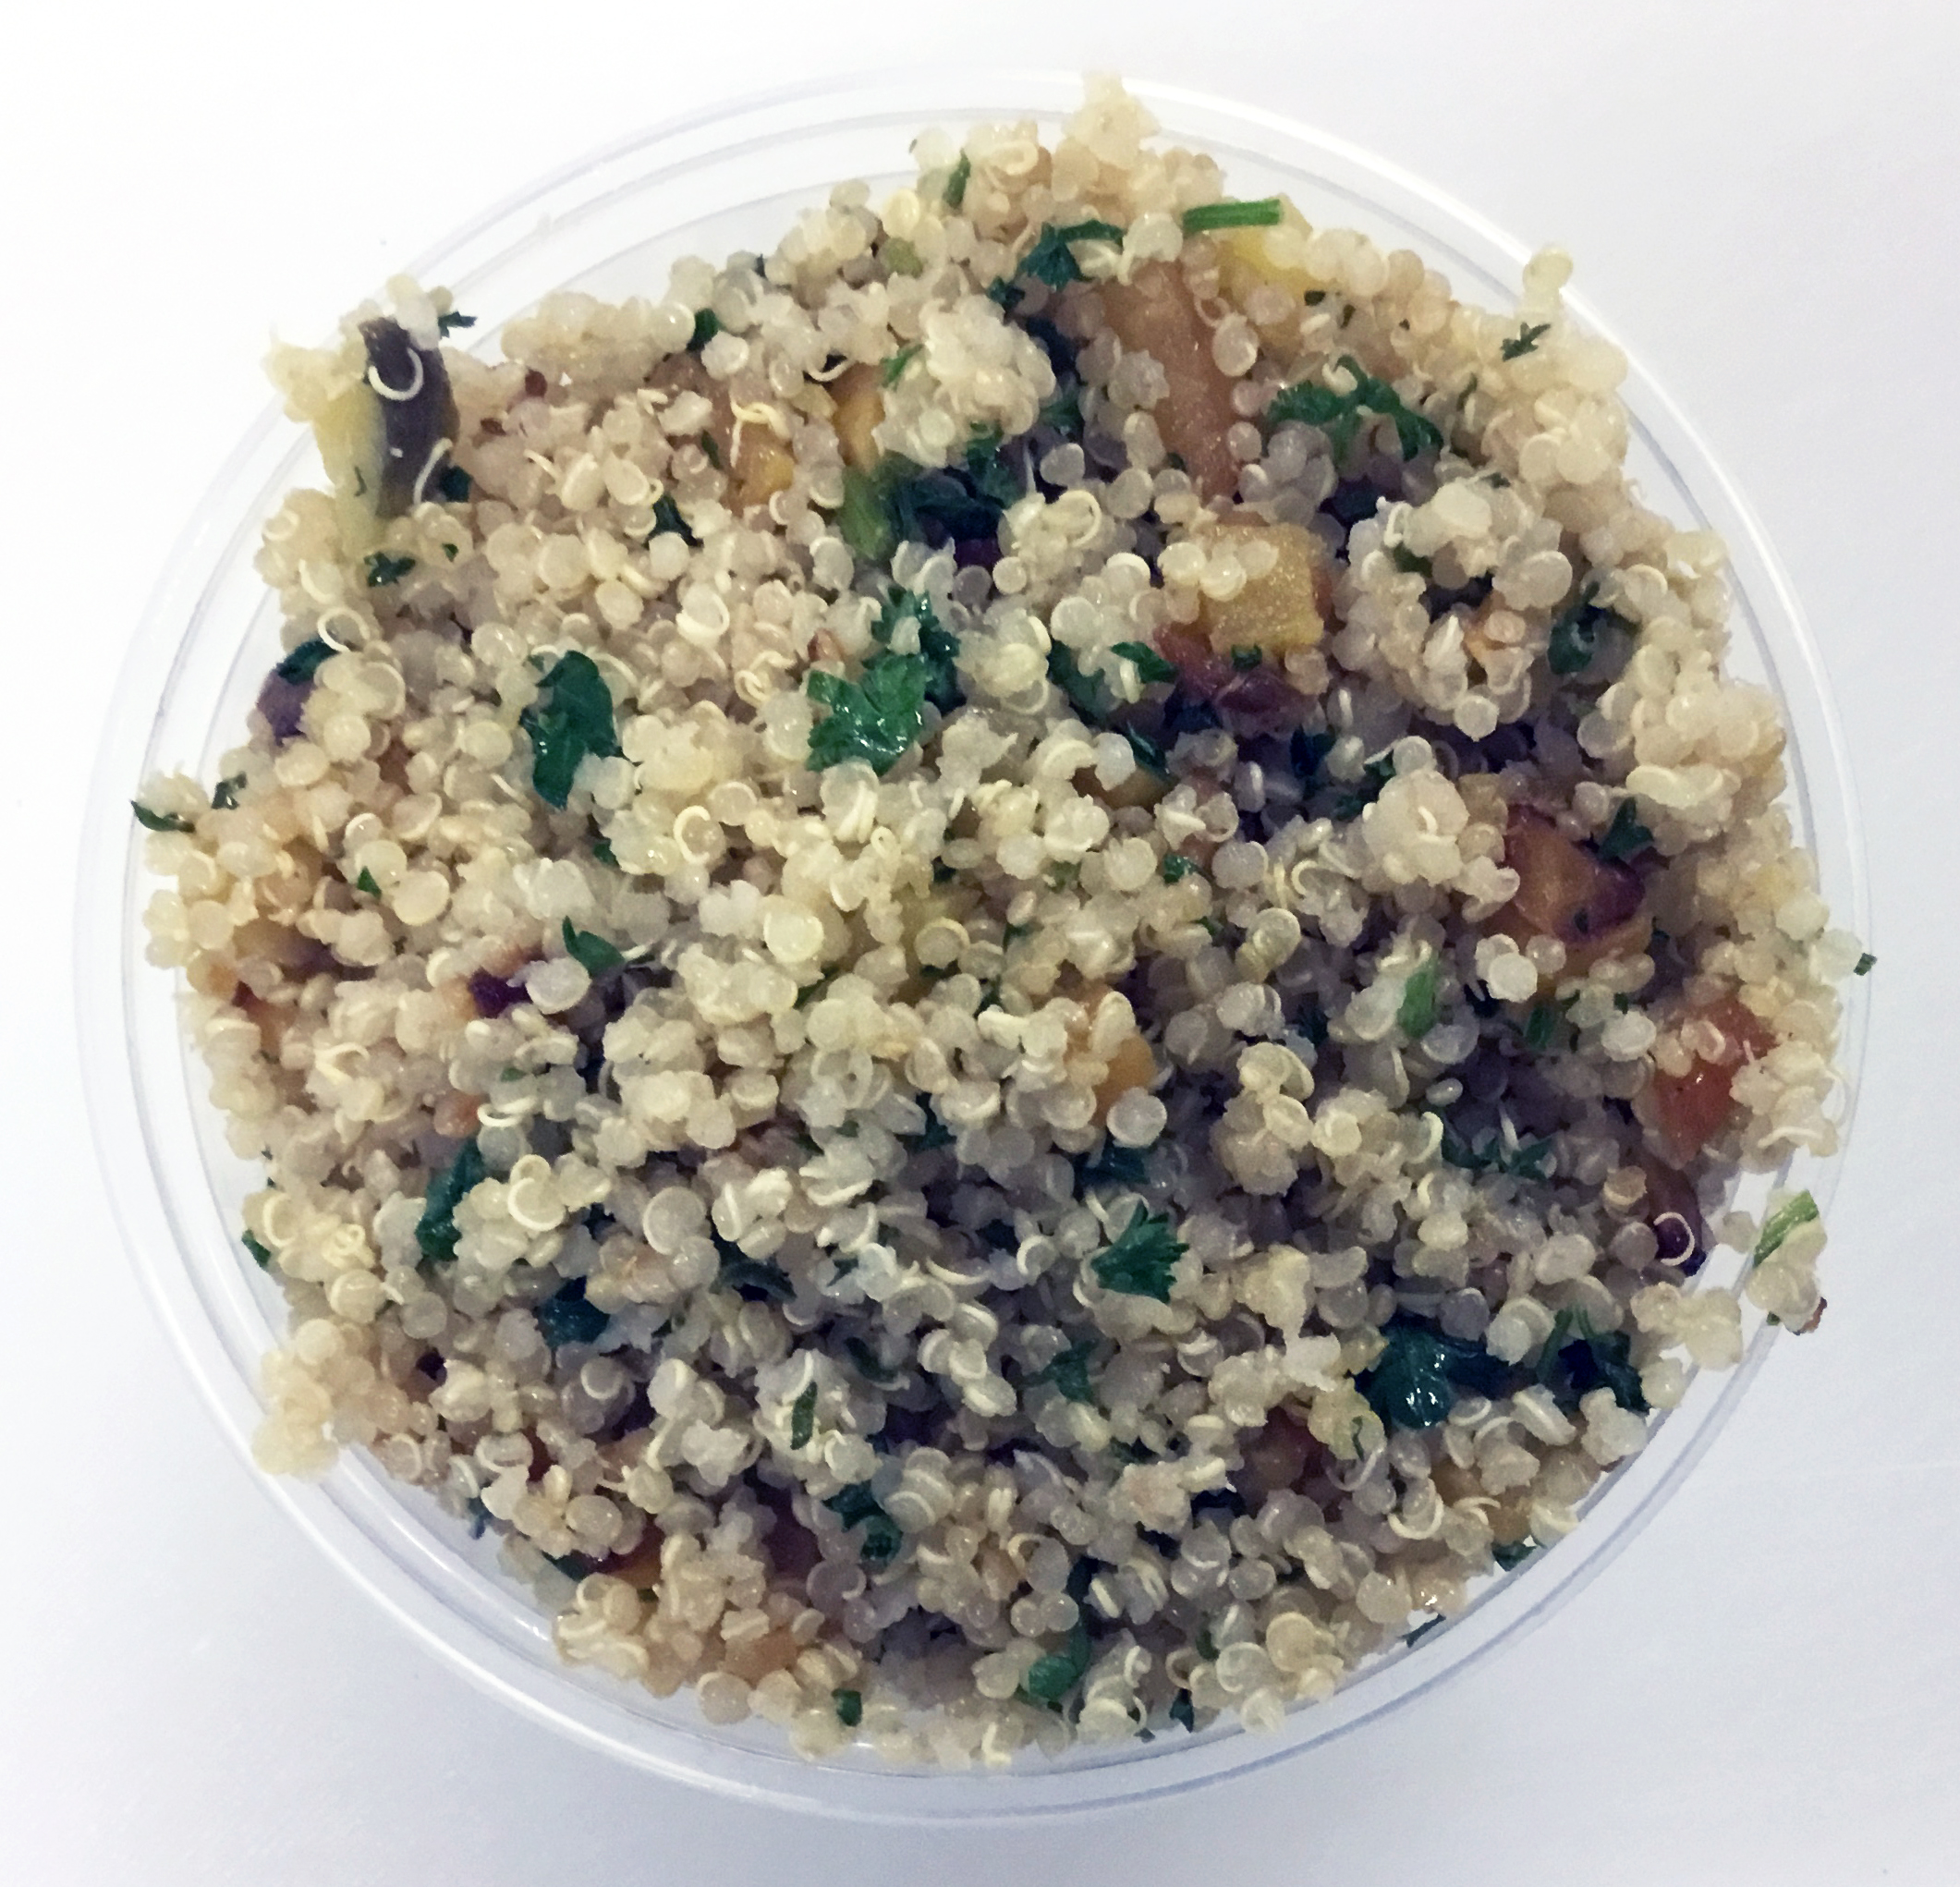 Quinoa with sautéed rutabaga, parsley and a brown rice vinegar dressing.